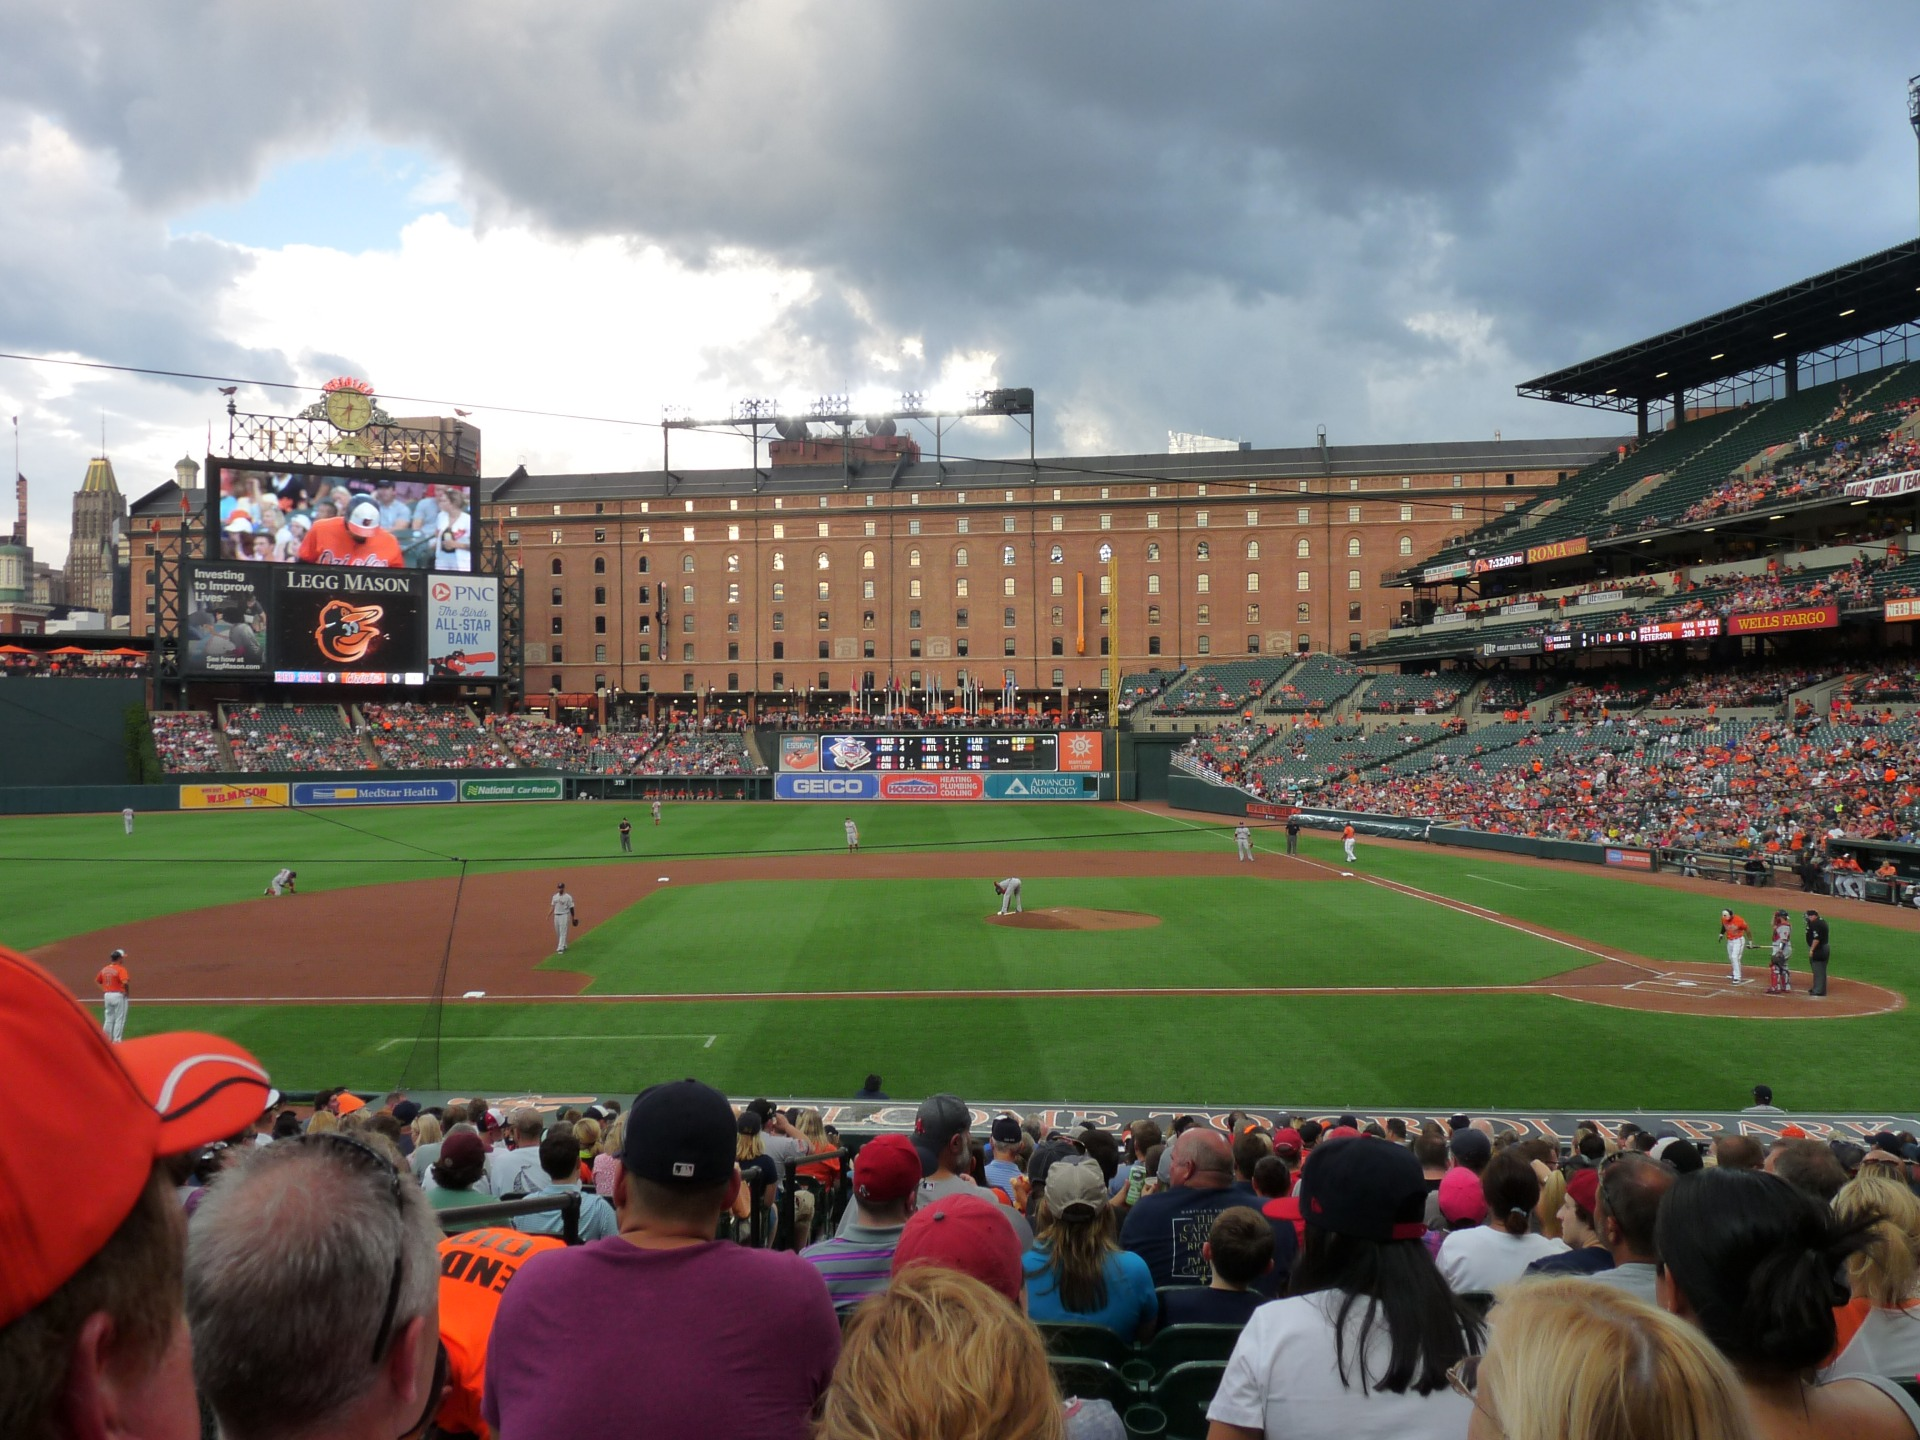 Oriole Park at Camden Yards Section 50 Row 20 Seat 11